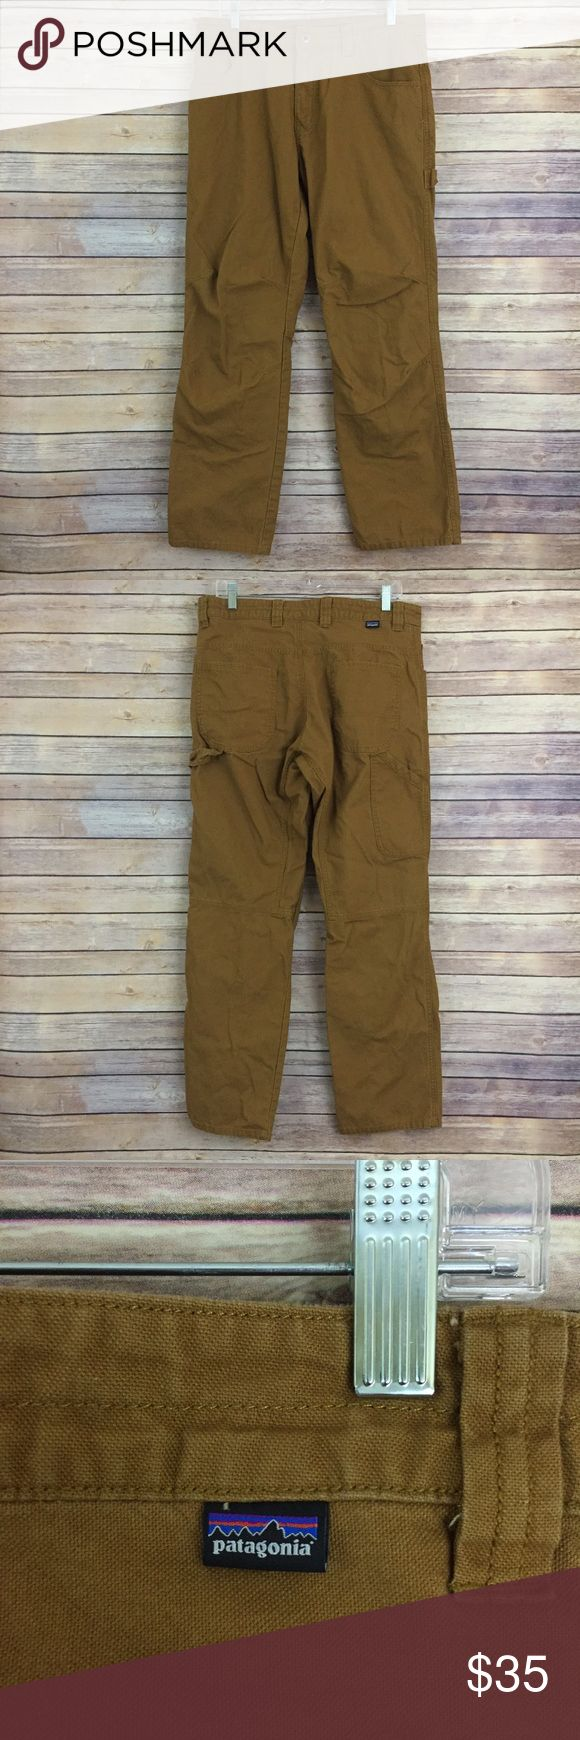 Patagonia men's spiced mustard brown pants, 34X30 These men's Patagonia pants are a size 34X30 and they are in excellent pre owned condition.  They are a spicy mustard color like an ochre. Patagonia Pants